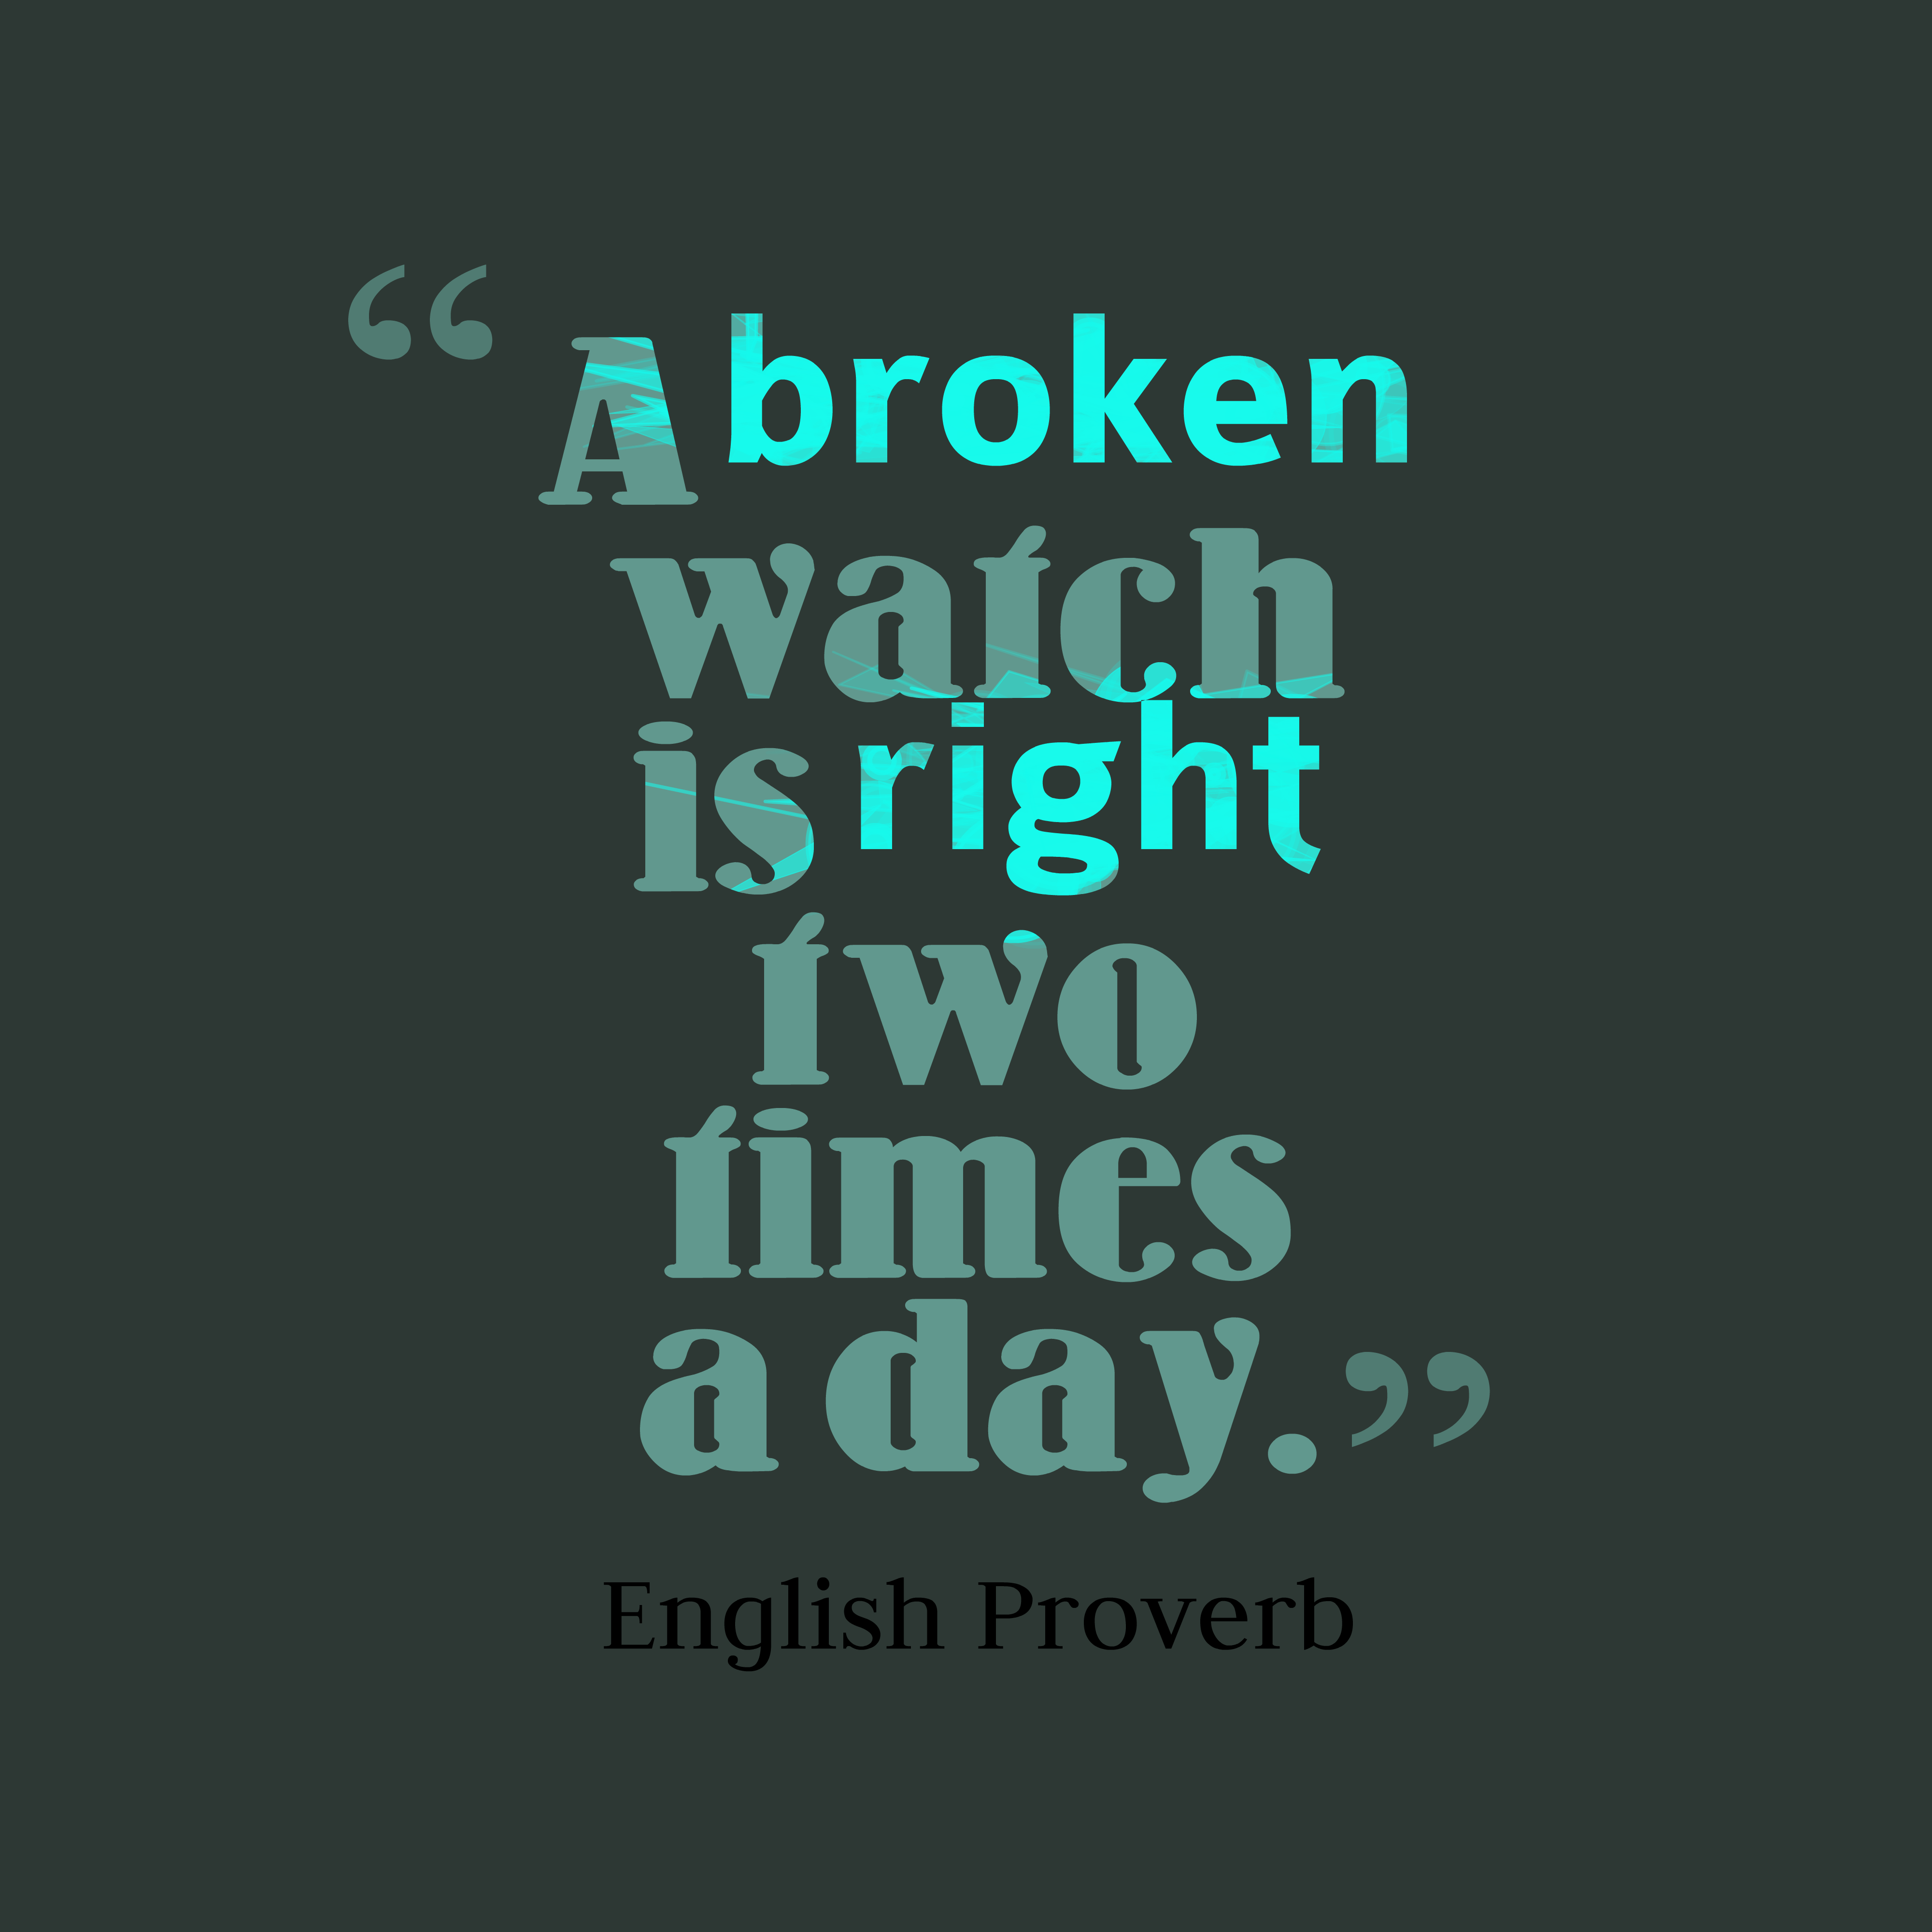 English proverb quotes